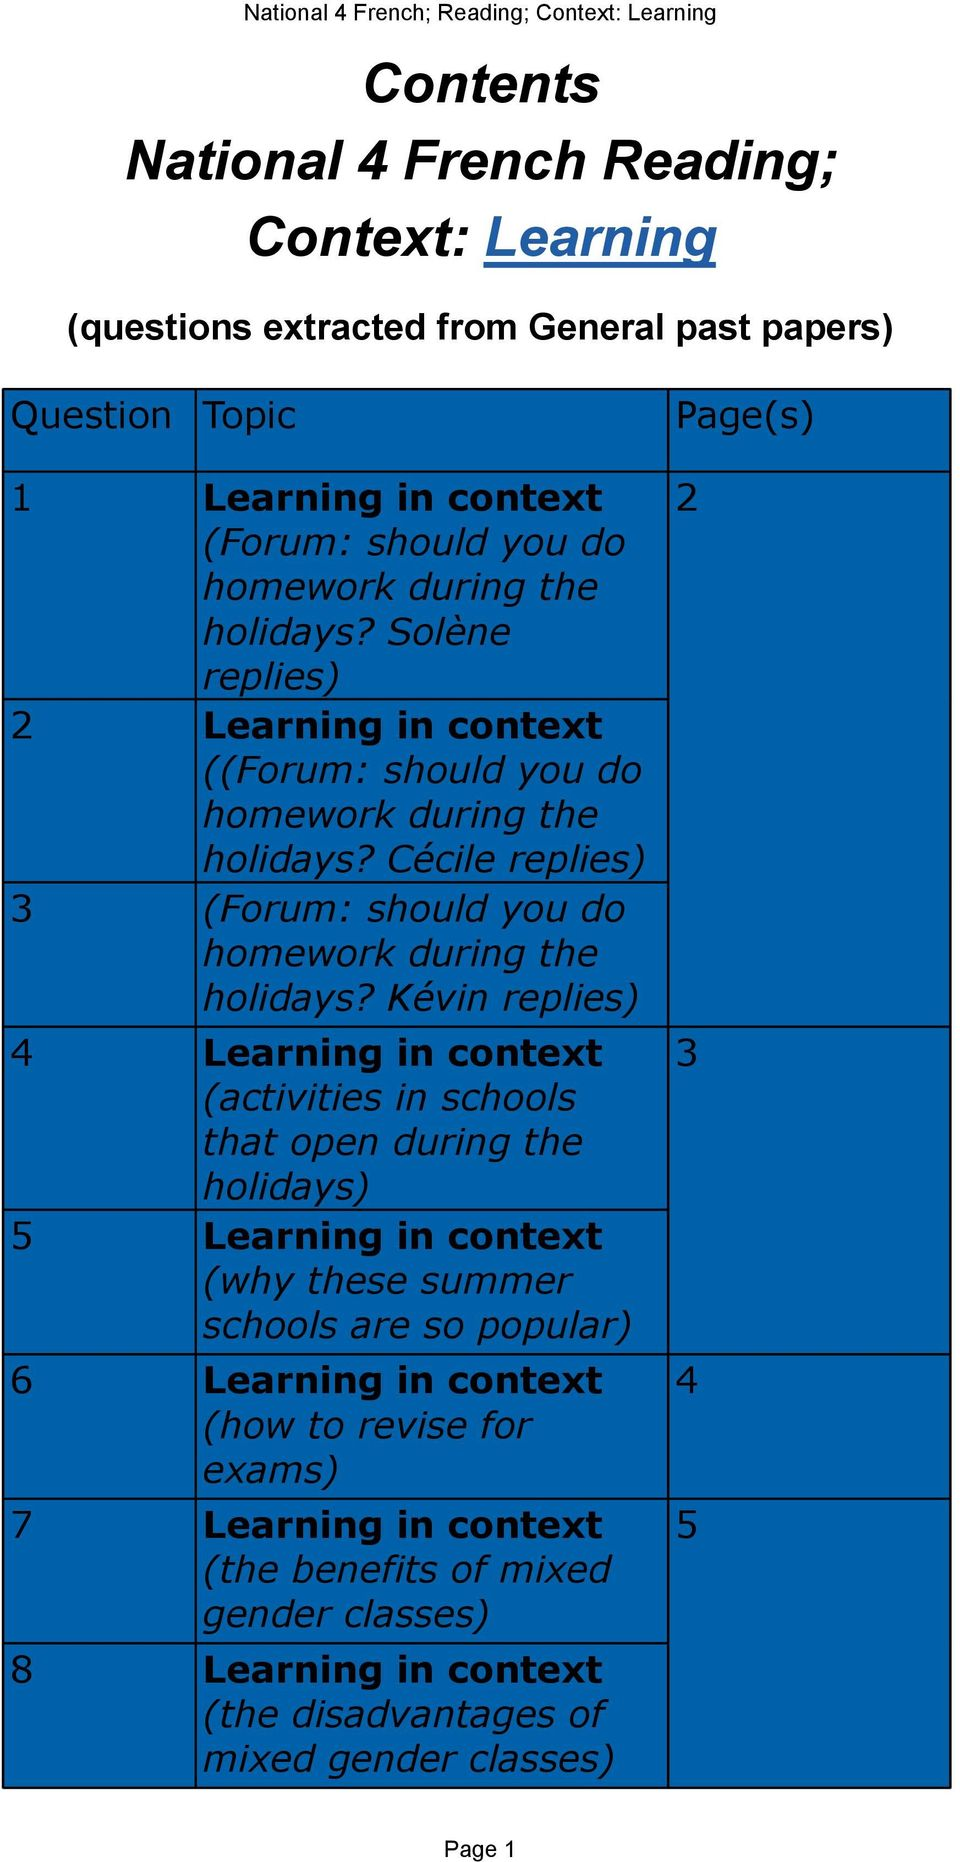 Kévin replies) 4 Learning in context (activities in schools that open during the holidays) 5 Learning in context (why these summer schools are so popular) 6